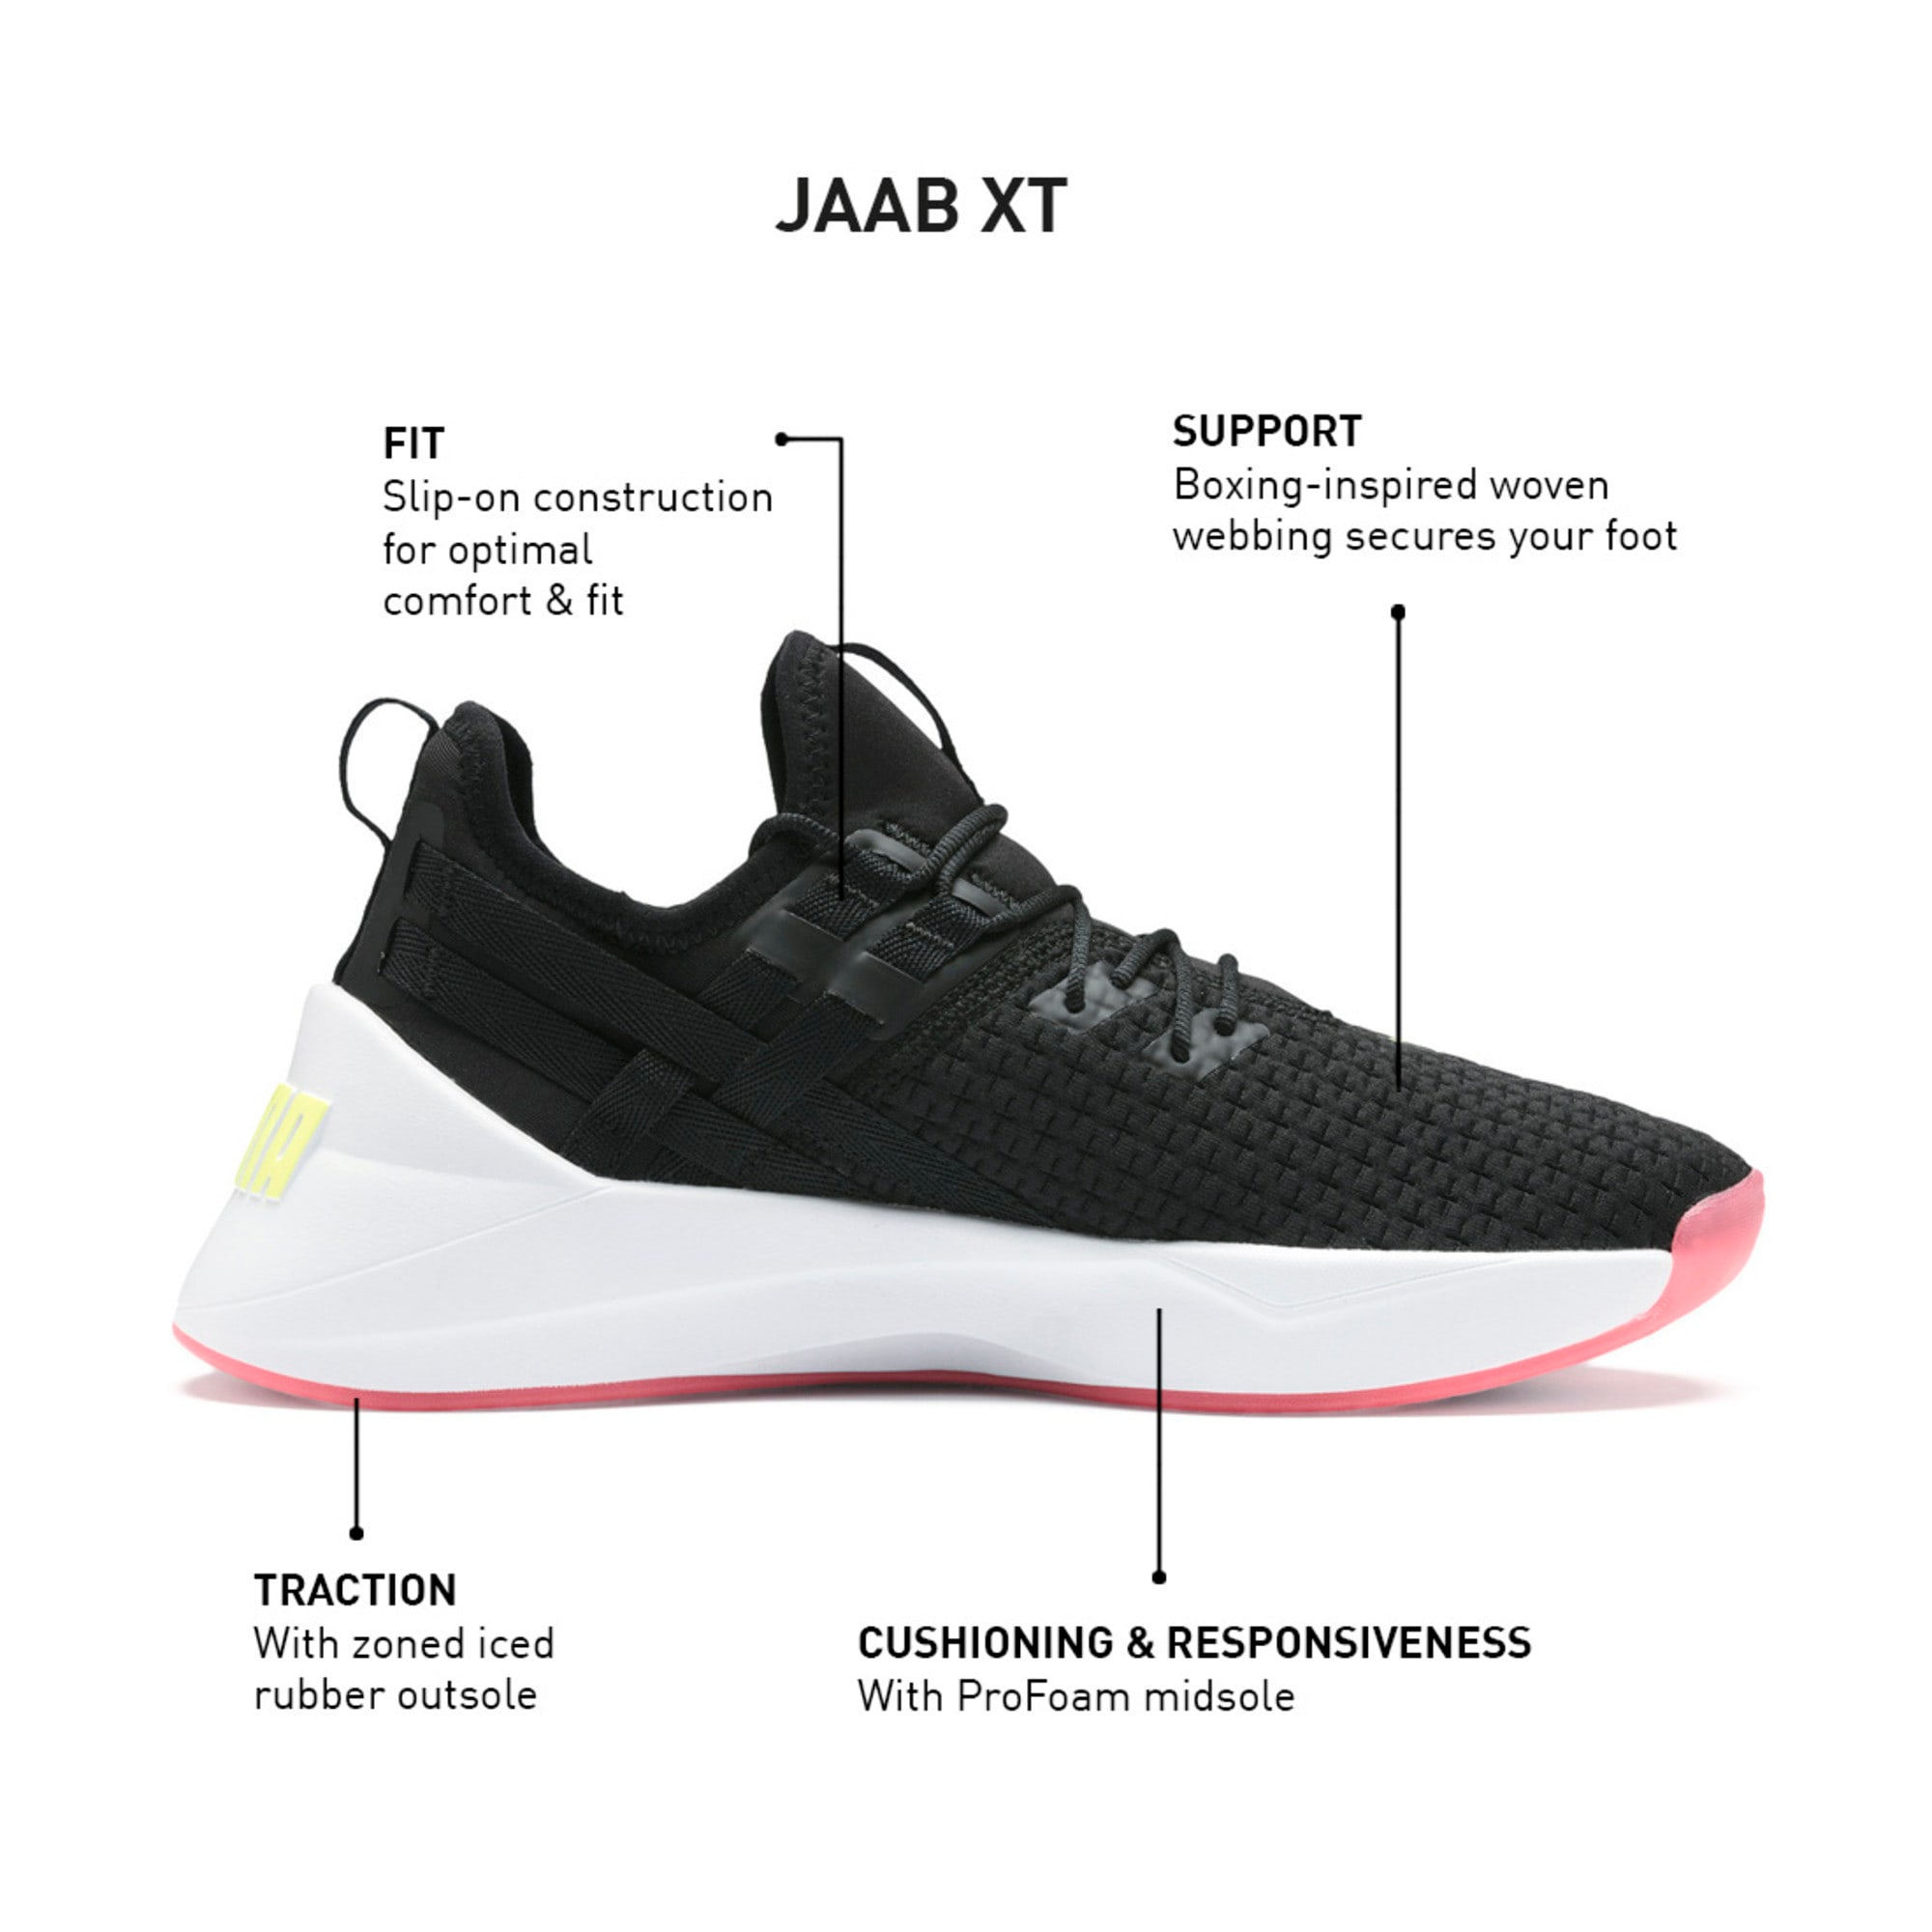 Thumbnail 9 of Jaab XT Women's Training Trainers, Puma Black-Puma White, medium-IND